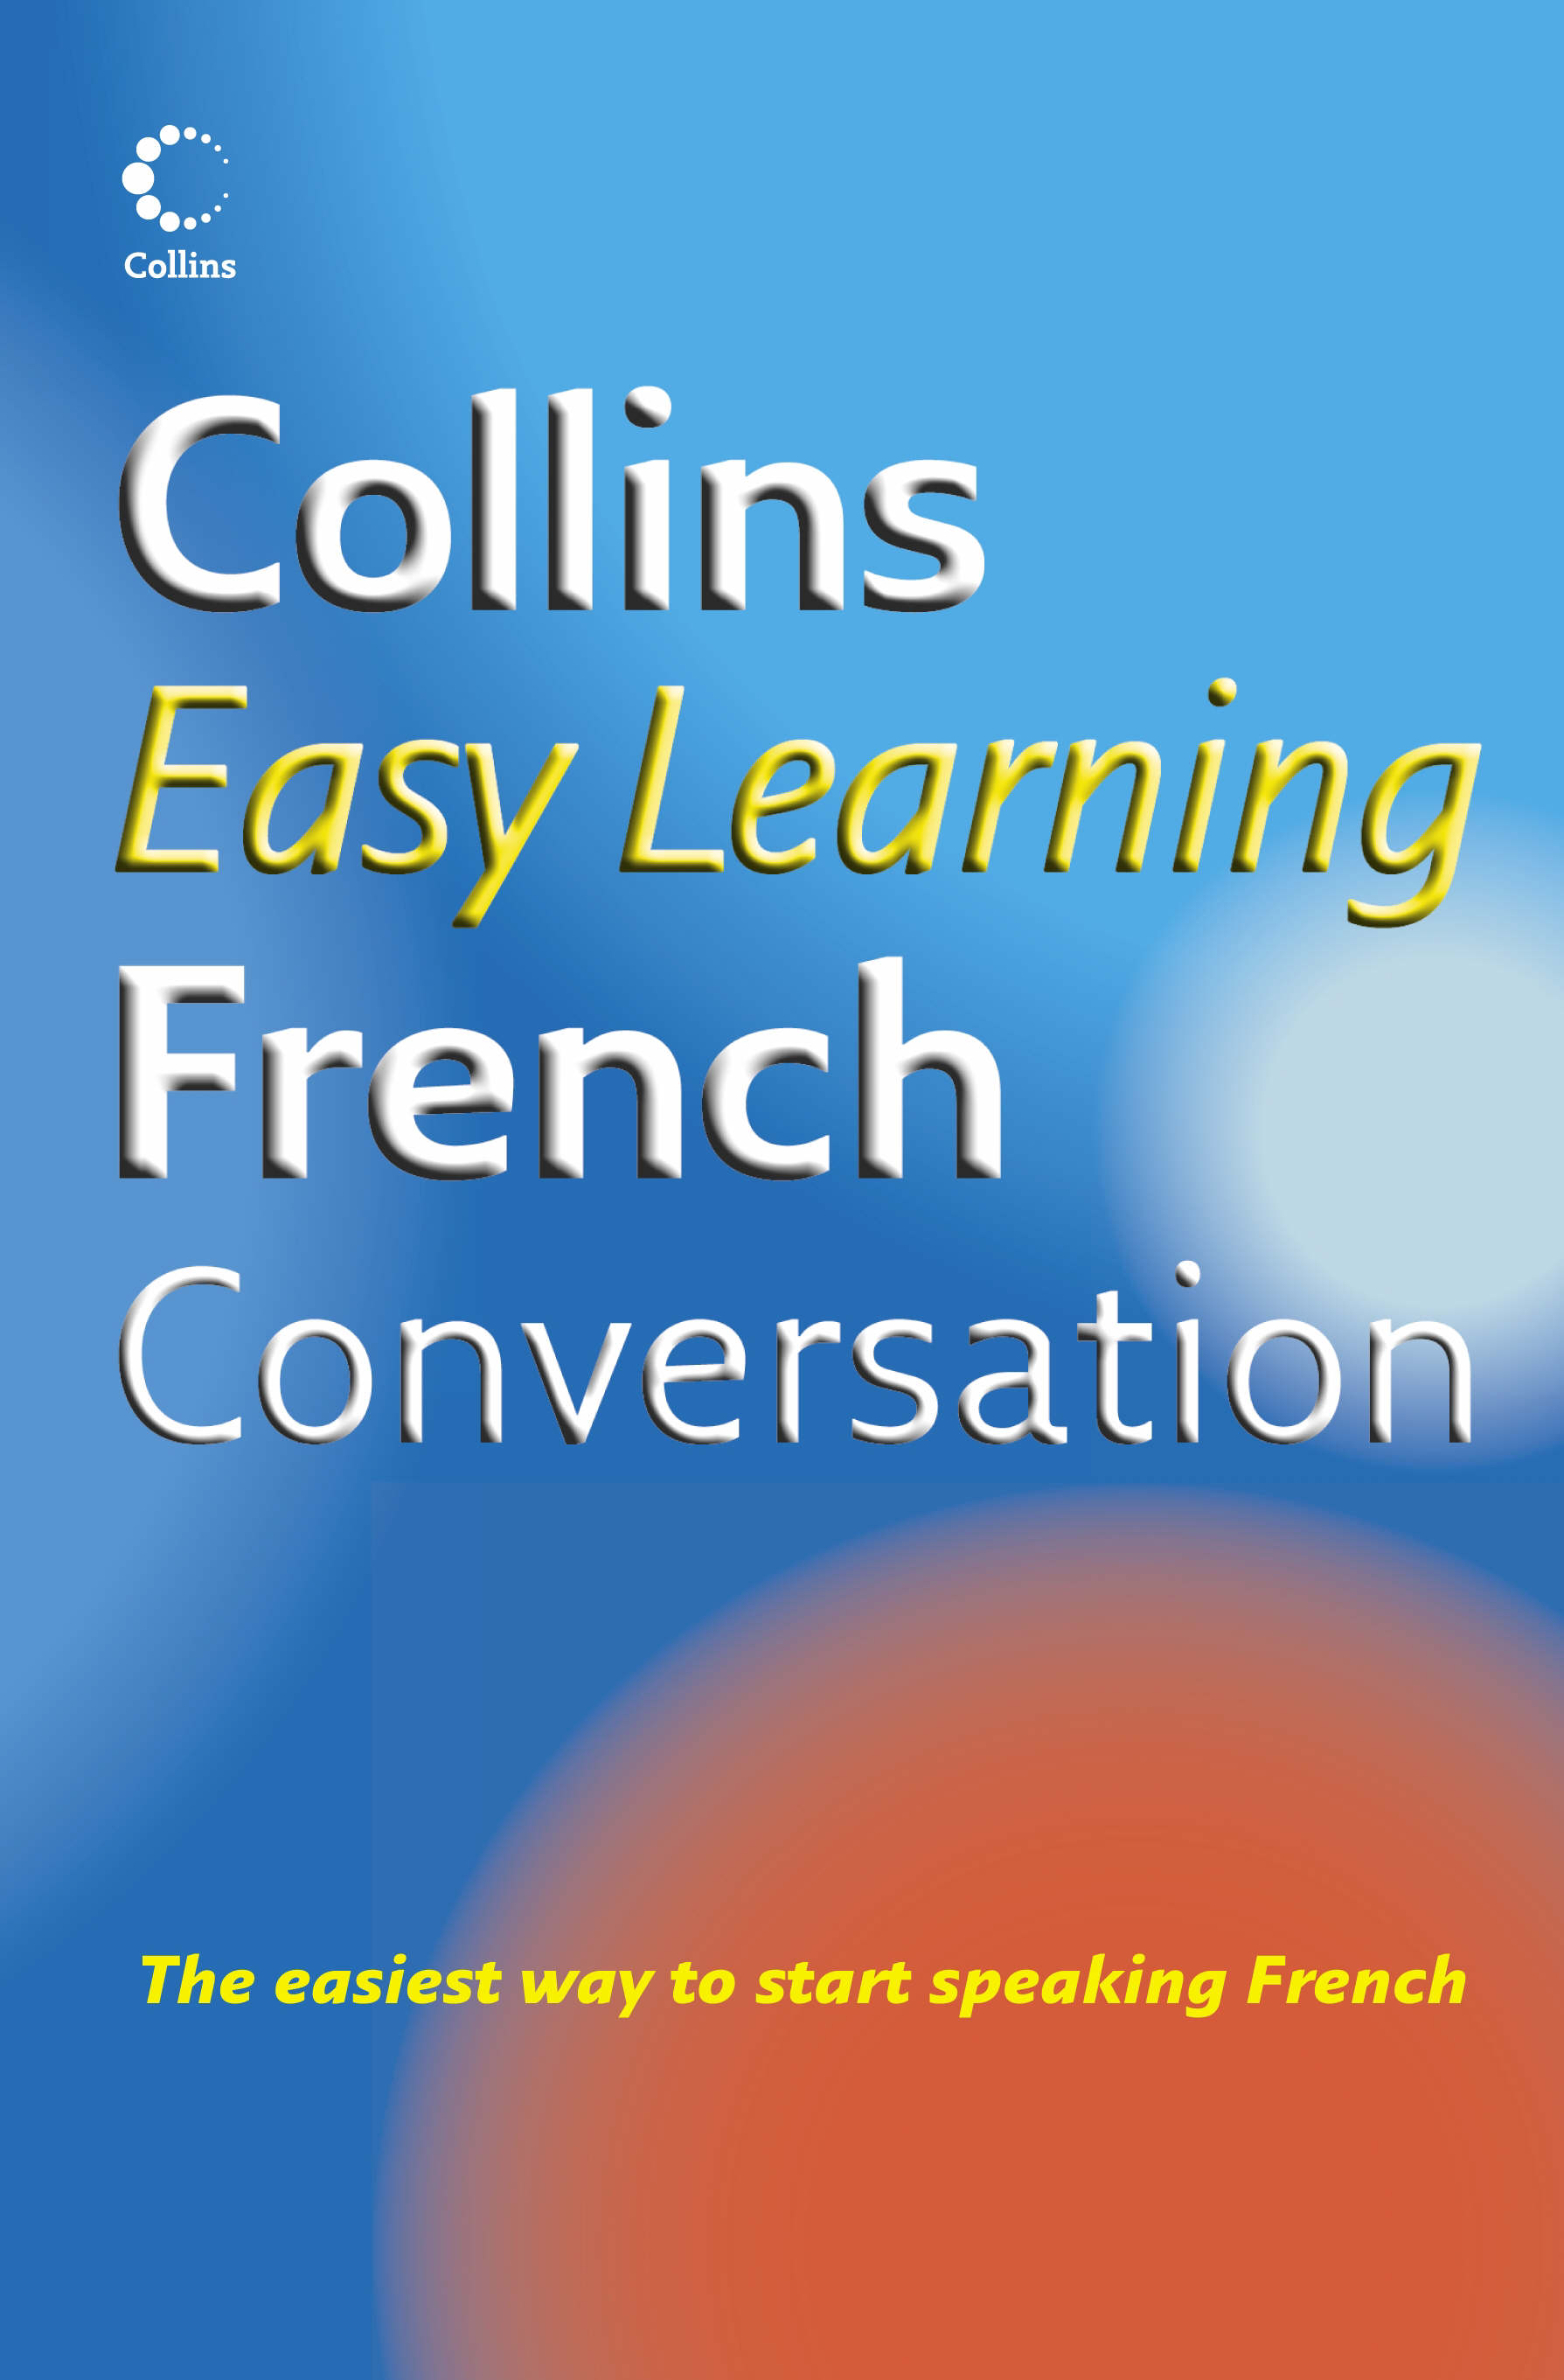 Collins French conversation by Collins Dictionaries (9780007229741